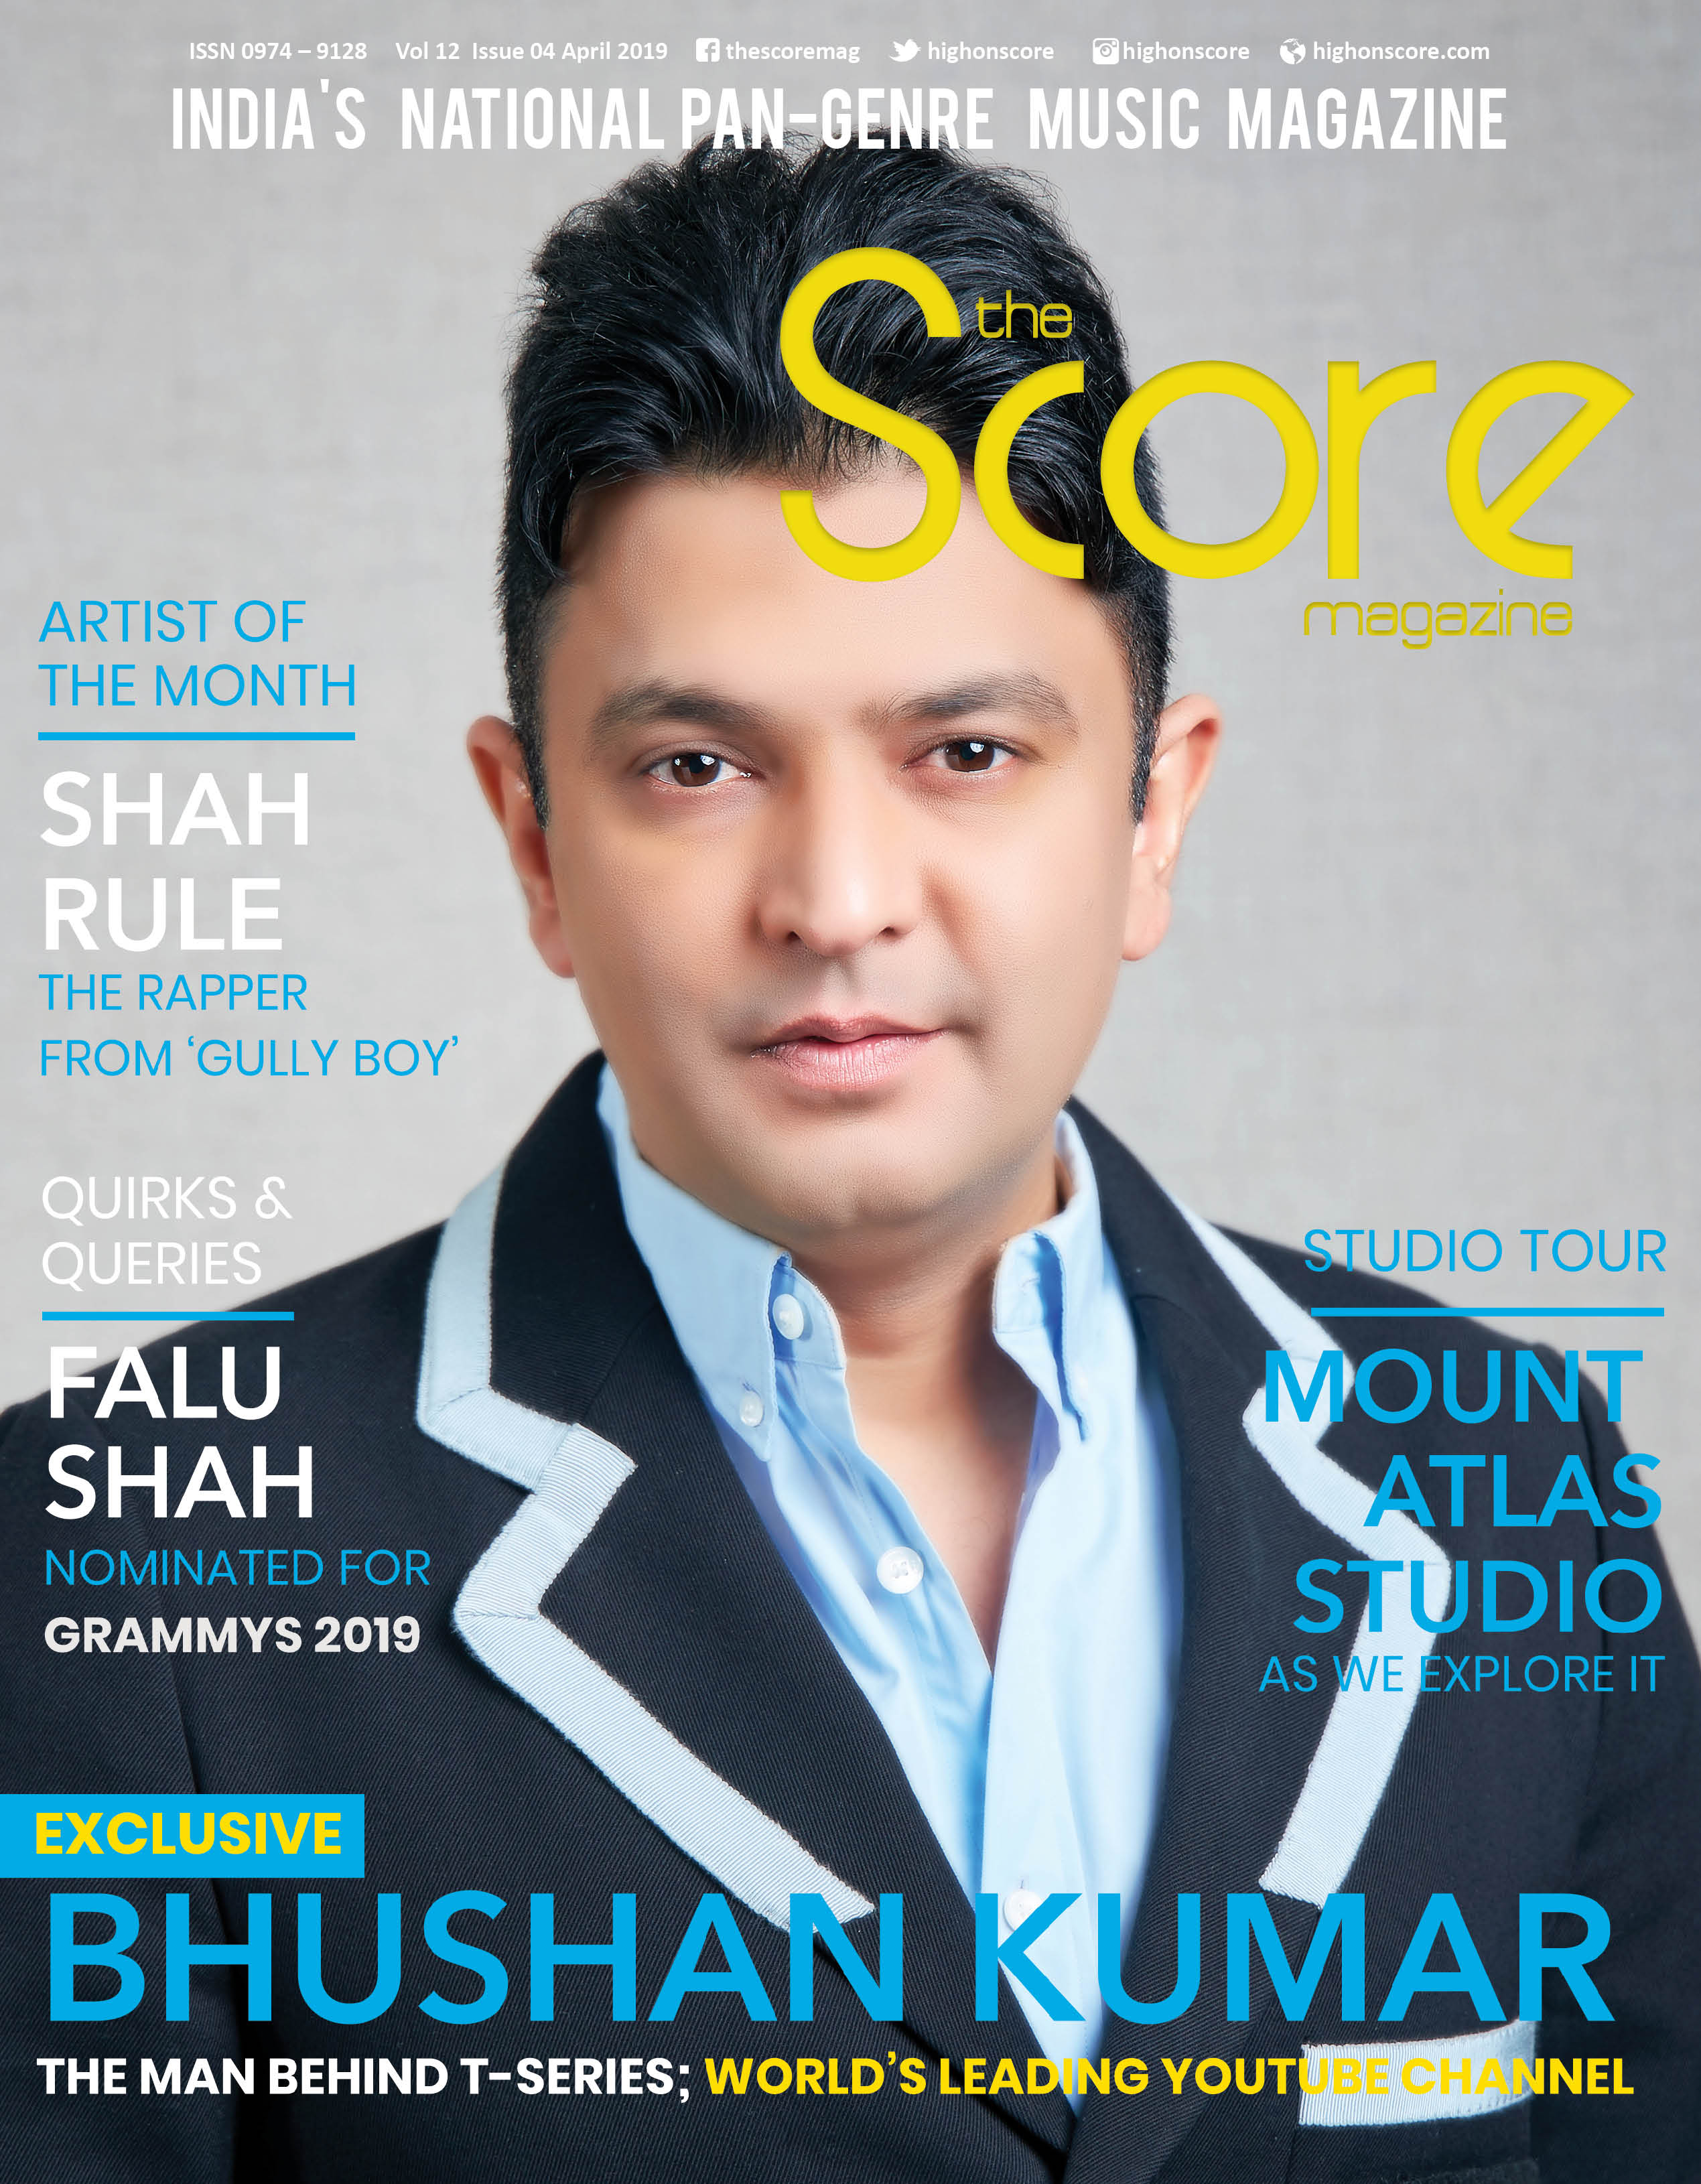 April 2019 issue featuring Bhushan Kumar on the cover!